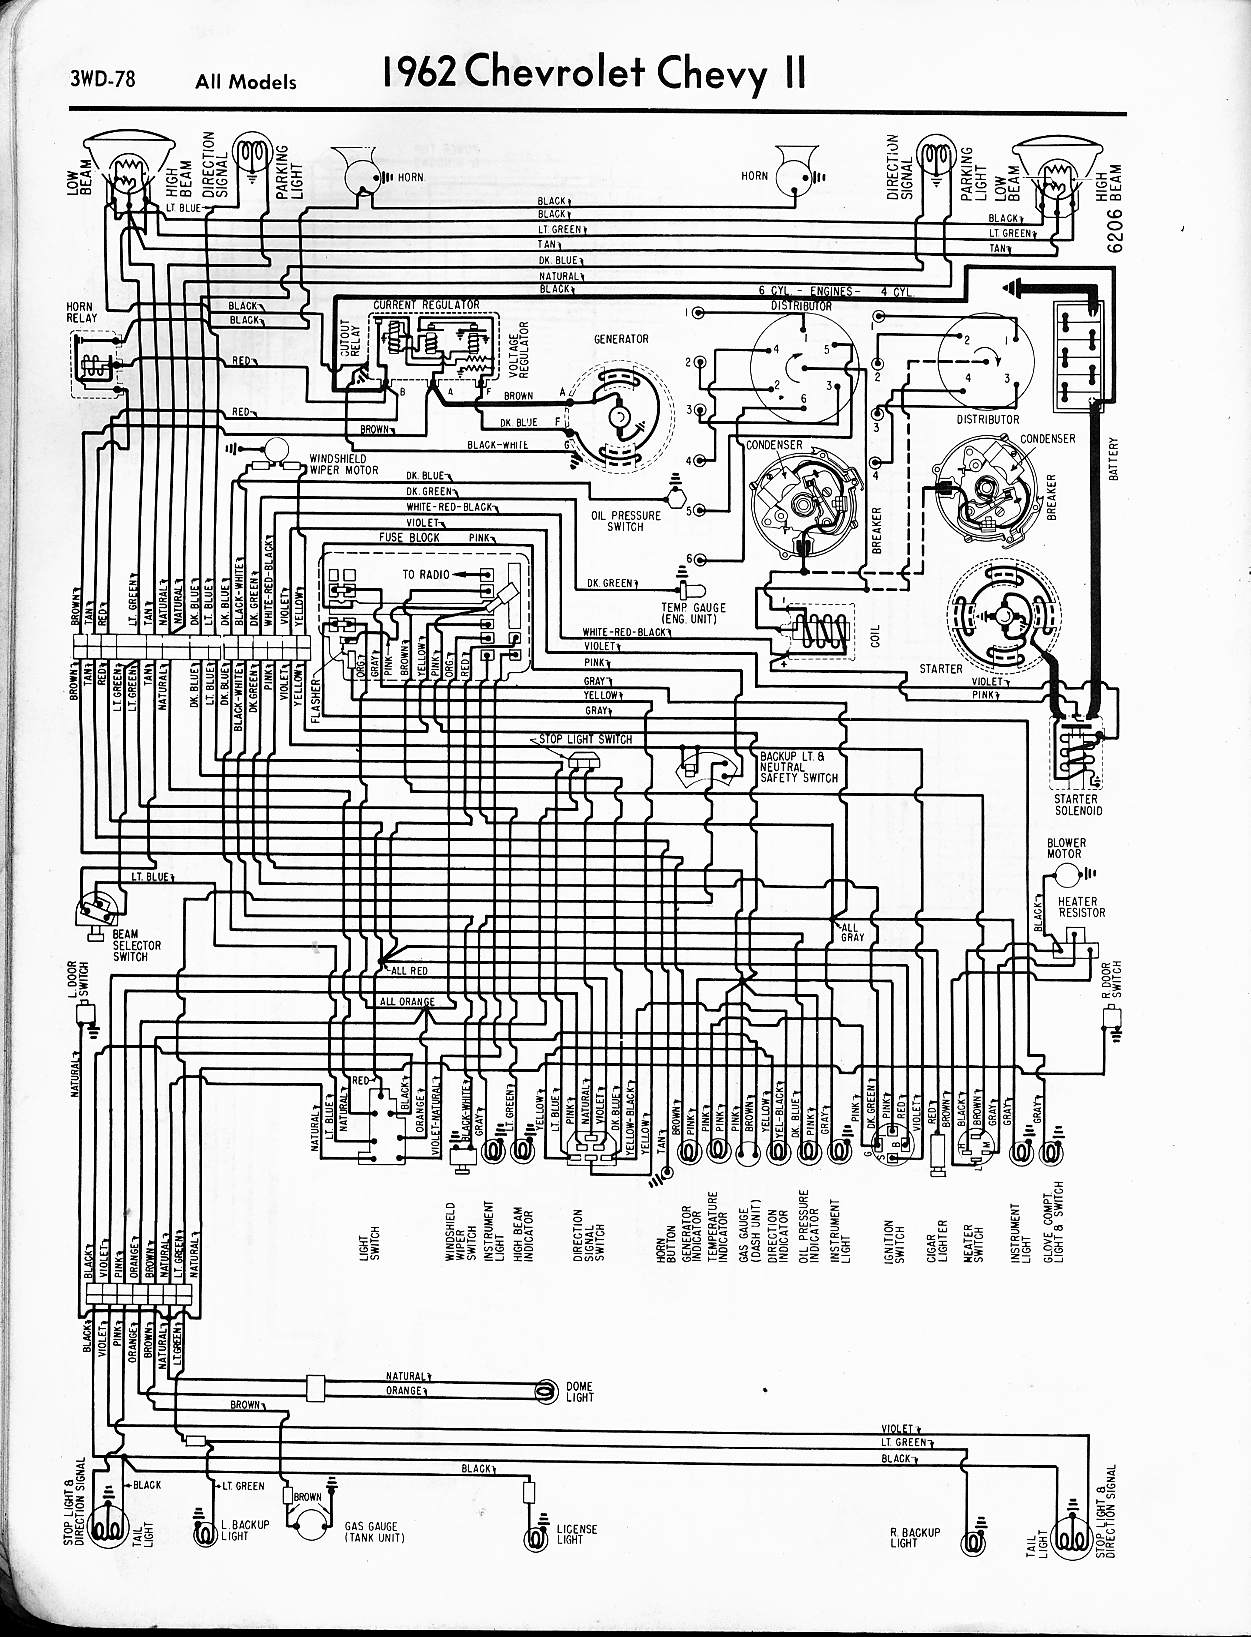 57 65 Chevy Wiring Diagrams 69 Vw Generator Diagram 1962 Ii All Models